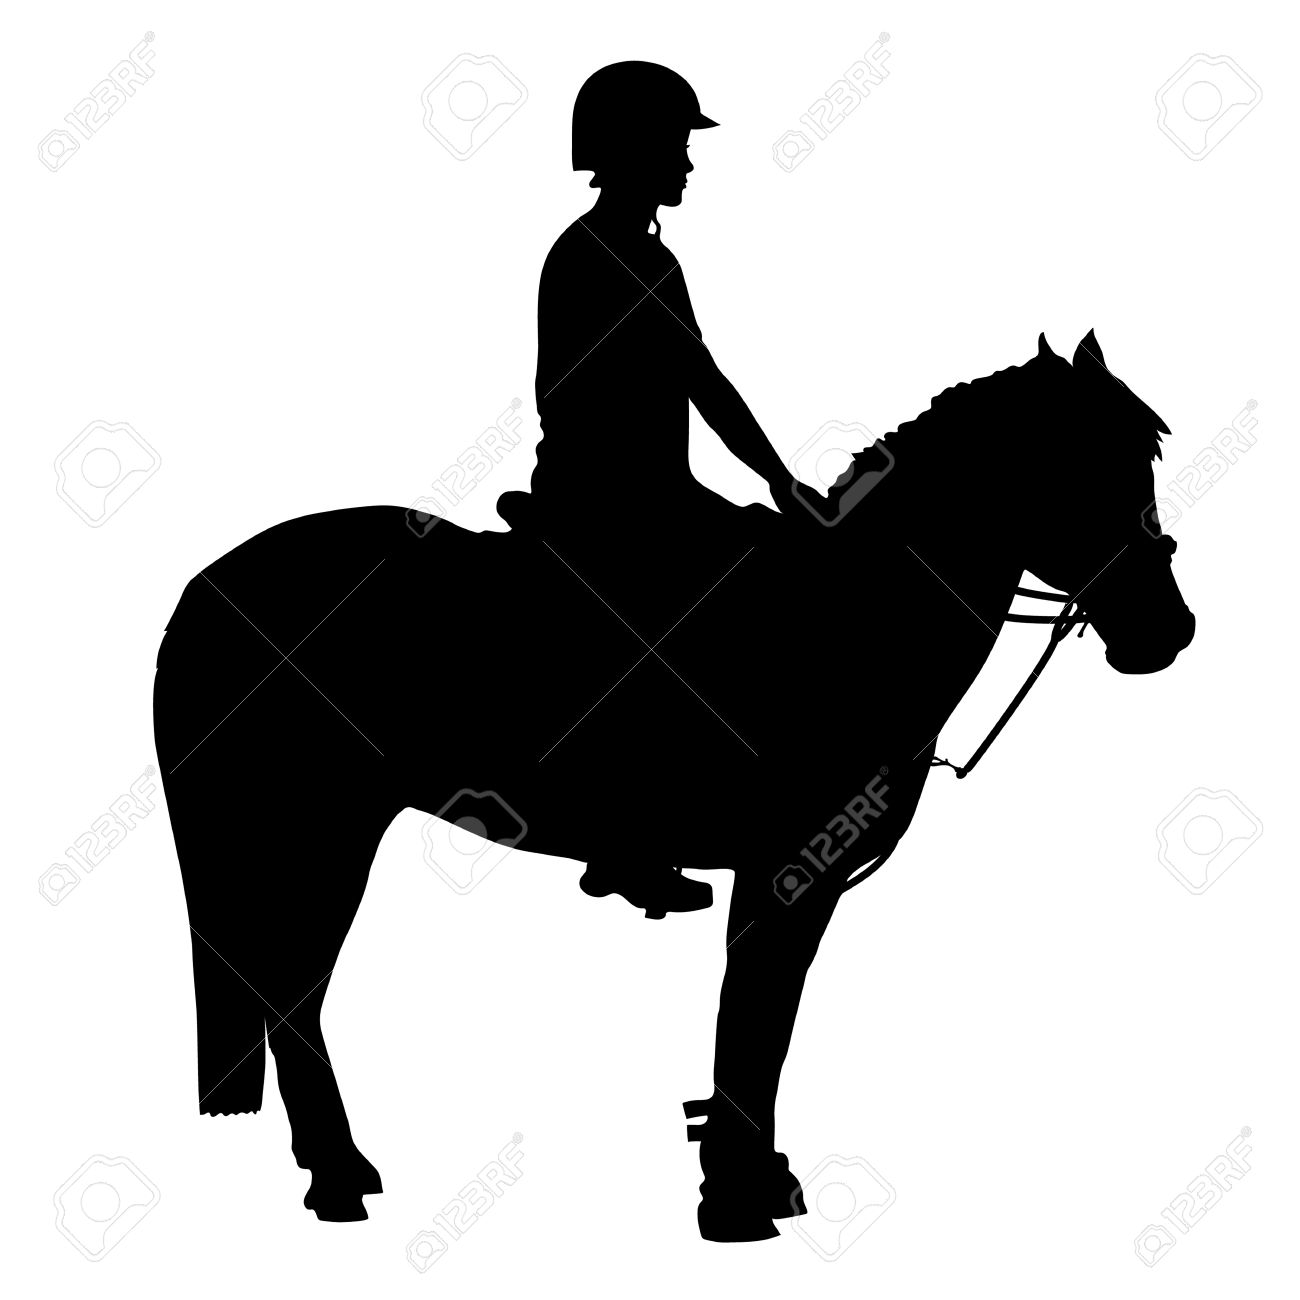 A black silhouette of a pony and rider that participate in mounted games and other equestrian sports - 49159214